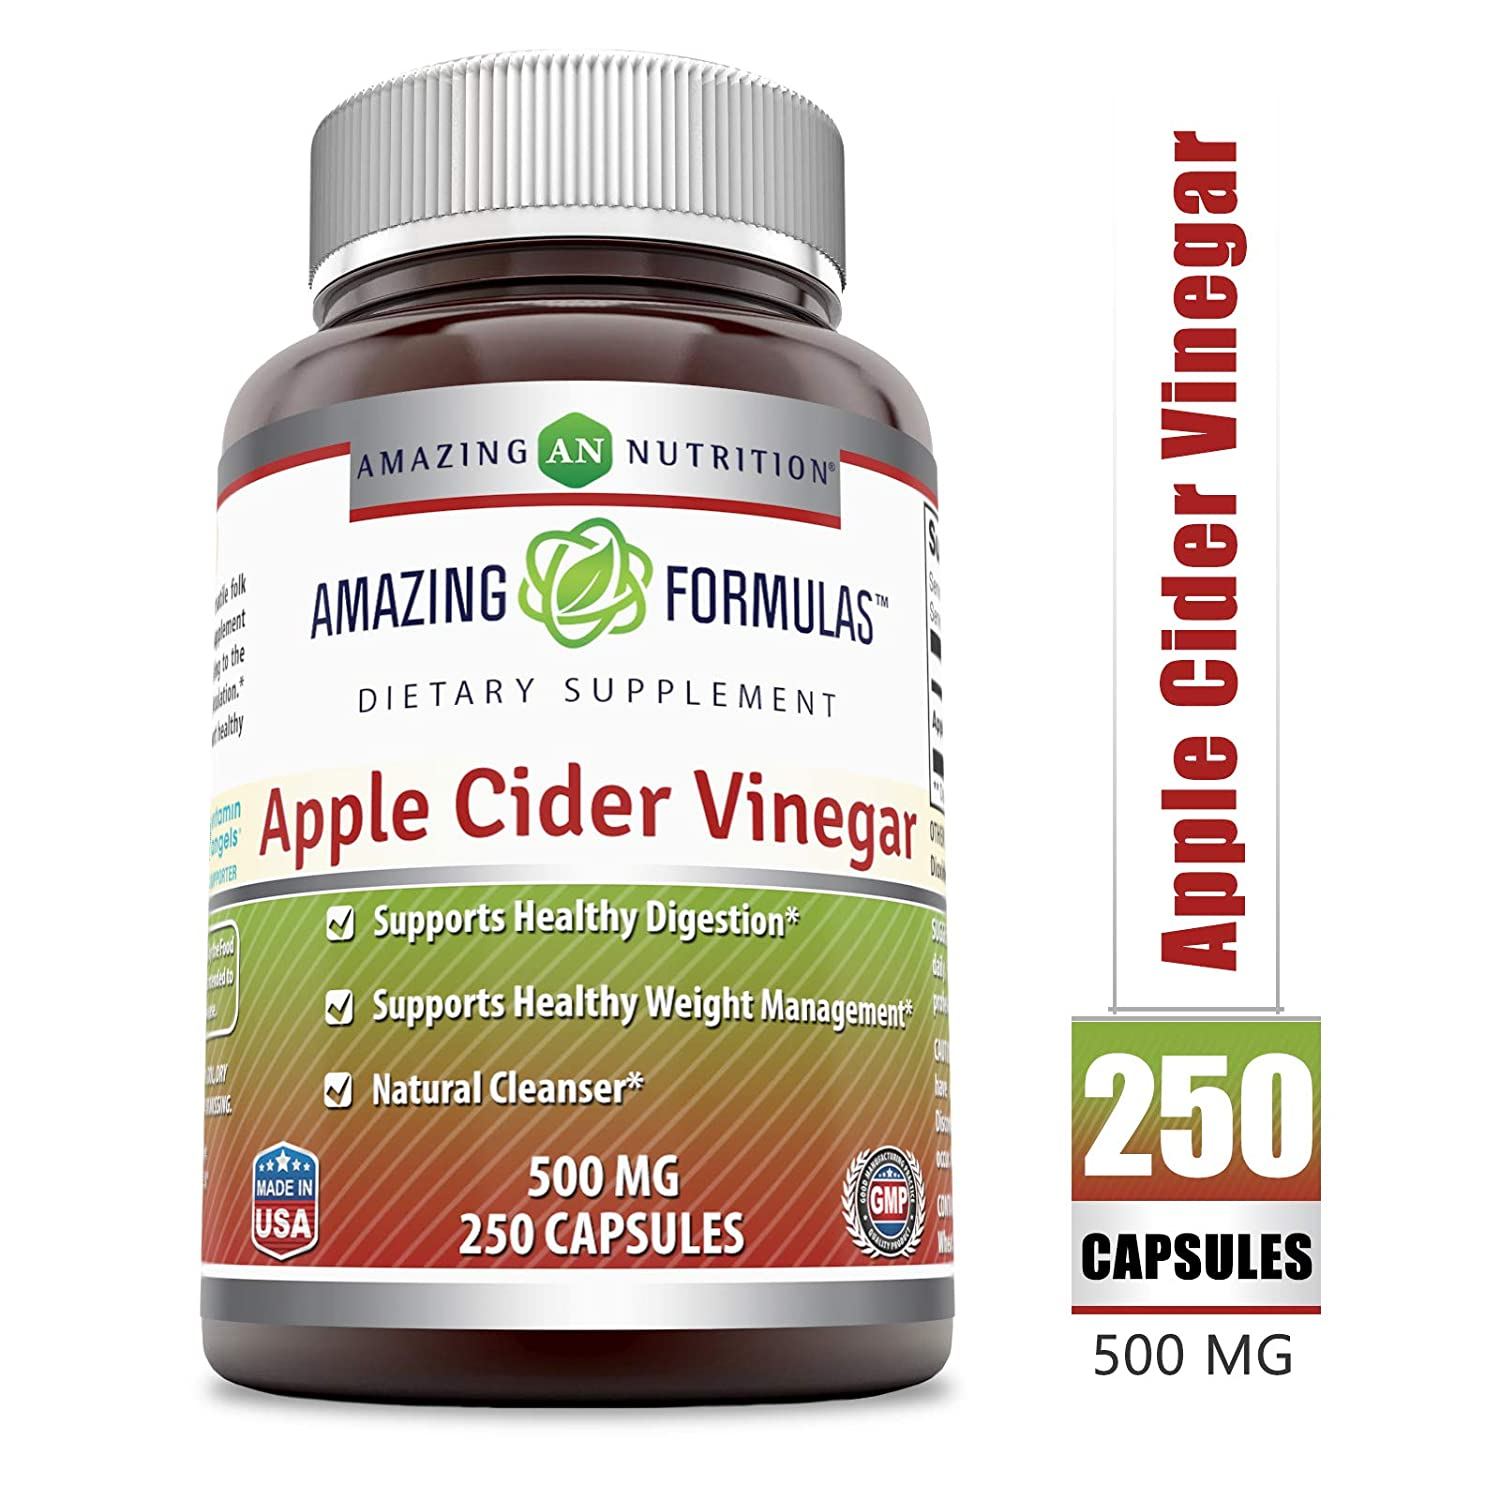 Amazing Formulas Apple Cider Vinegar - 500 Mg, Capsules (Non-GMO) - Supports Healthy Weight Management - Supports Digestive Functions - Natural Cleanser. (250 Count)